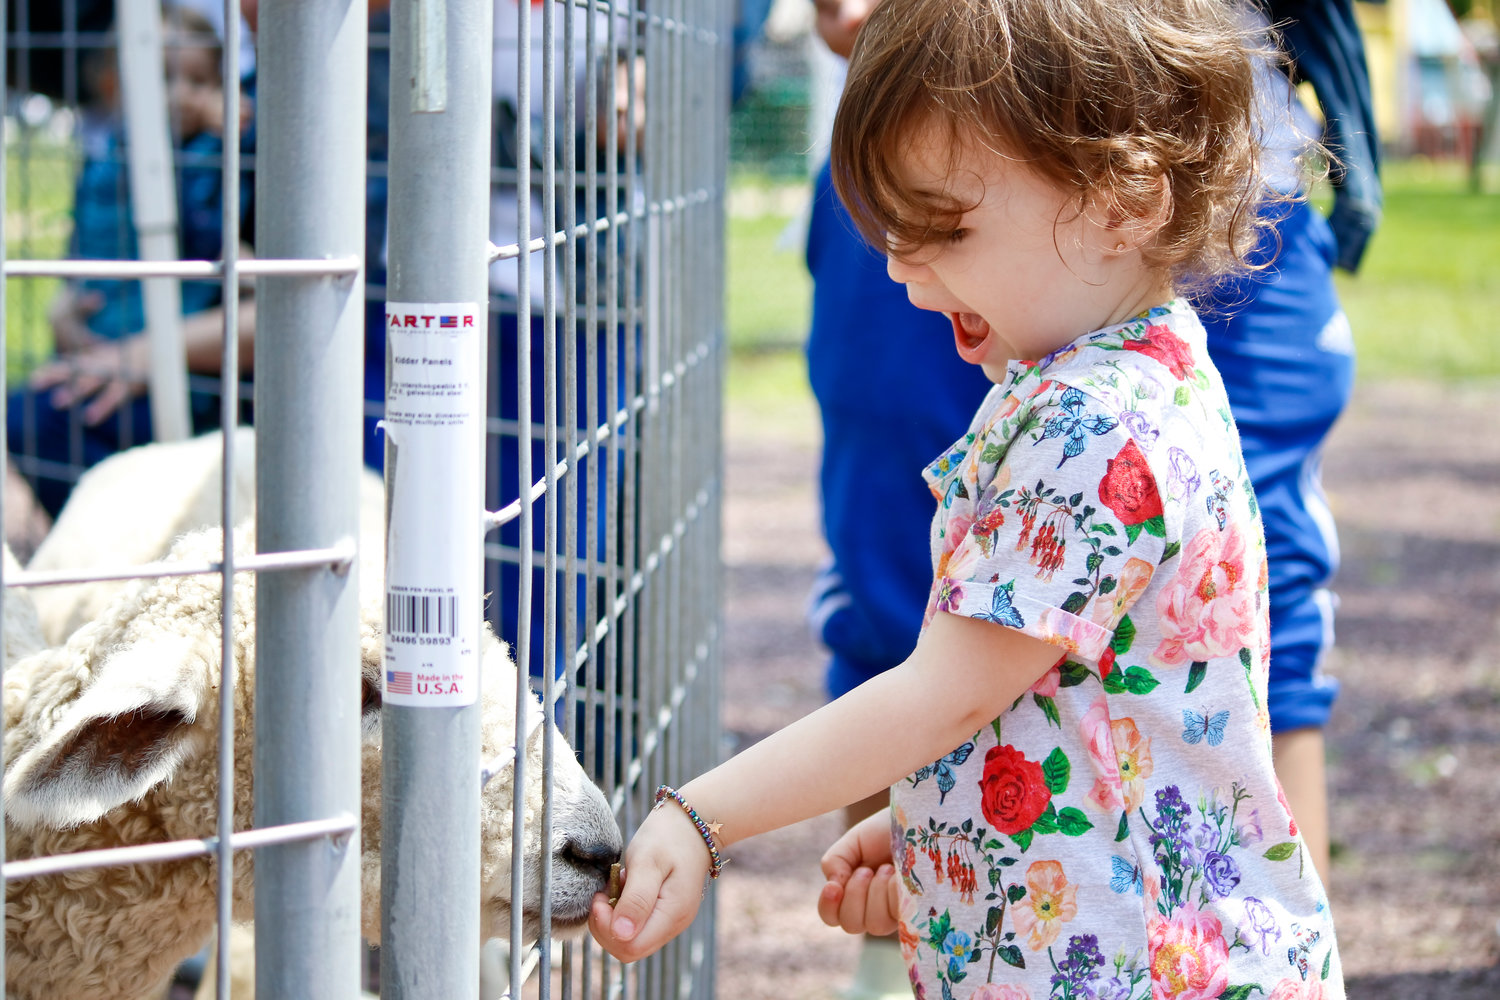 The petting zoo attracted many children, including Abby Assor 2 ½, who fed one of the sheep.